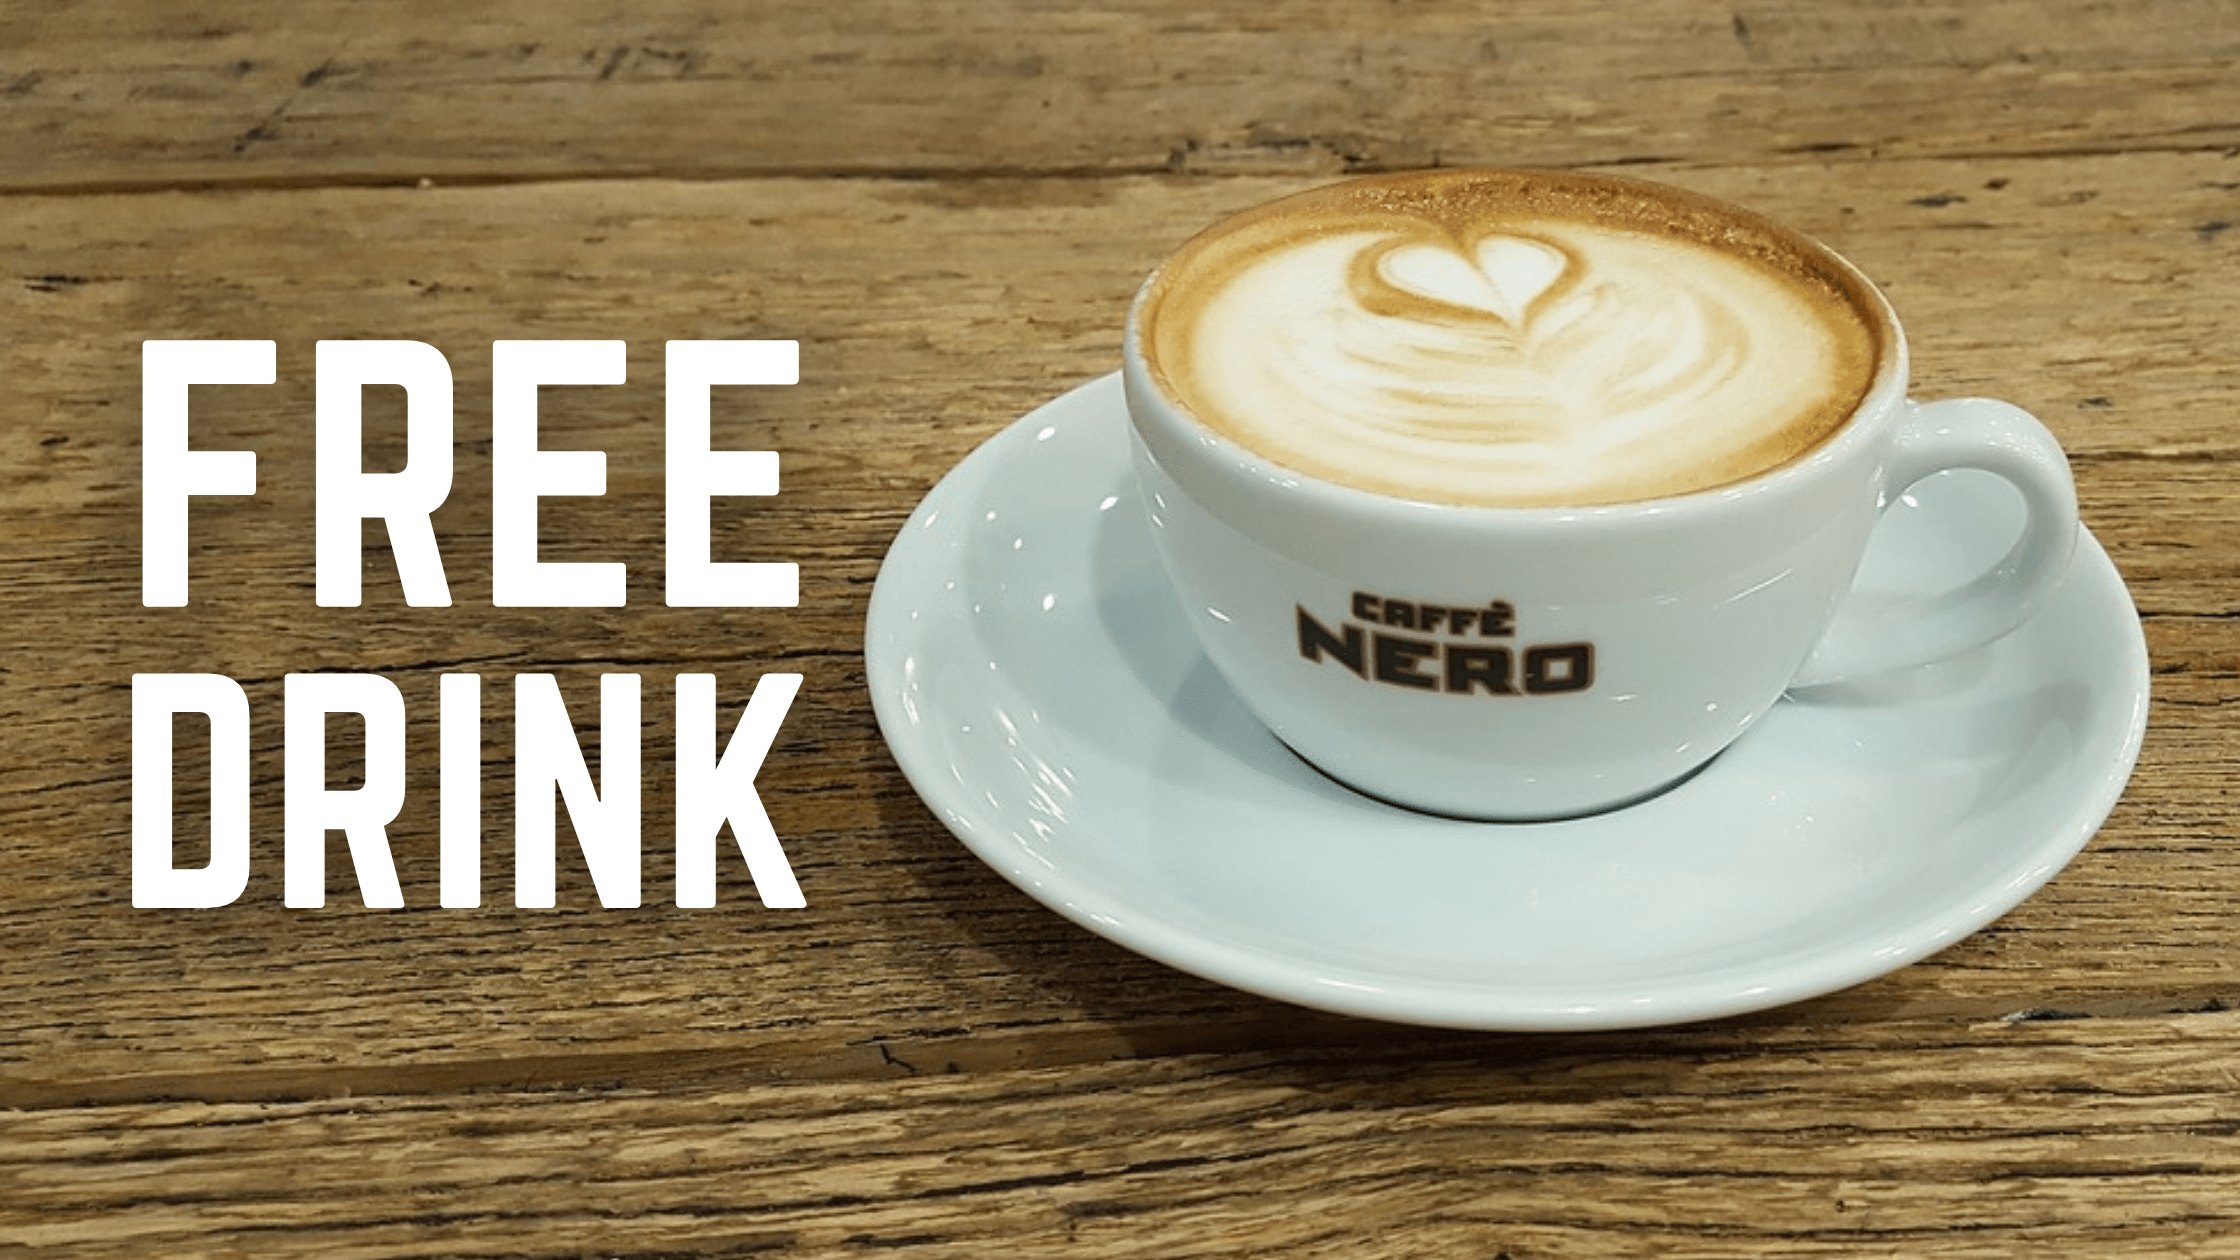 Caffe Nero App Free Drinks